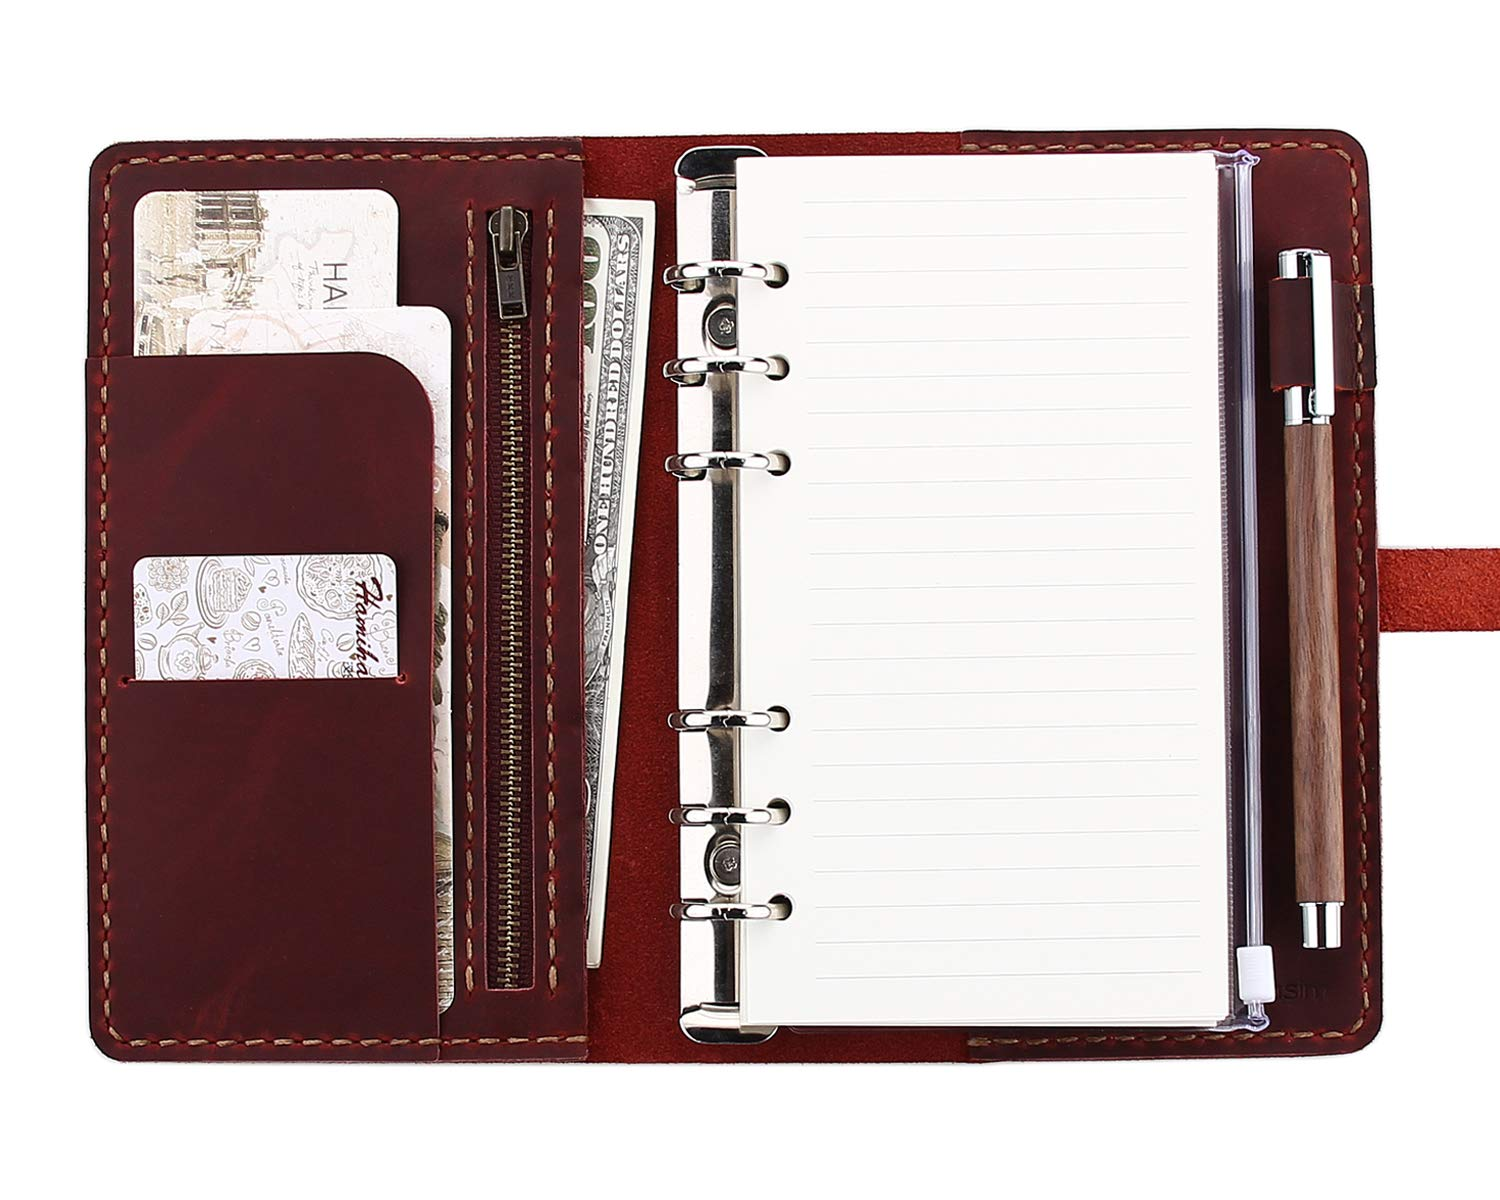 Refillable Leather Journal Writing Notebook, A6 Ring Binder Refillable Diary Notepads, Vintage Handmade Travel Organizer Agenda for Men Women - Wine